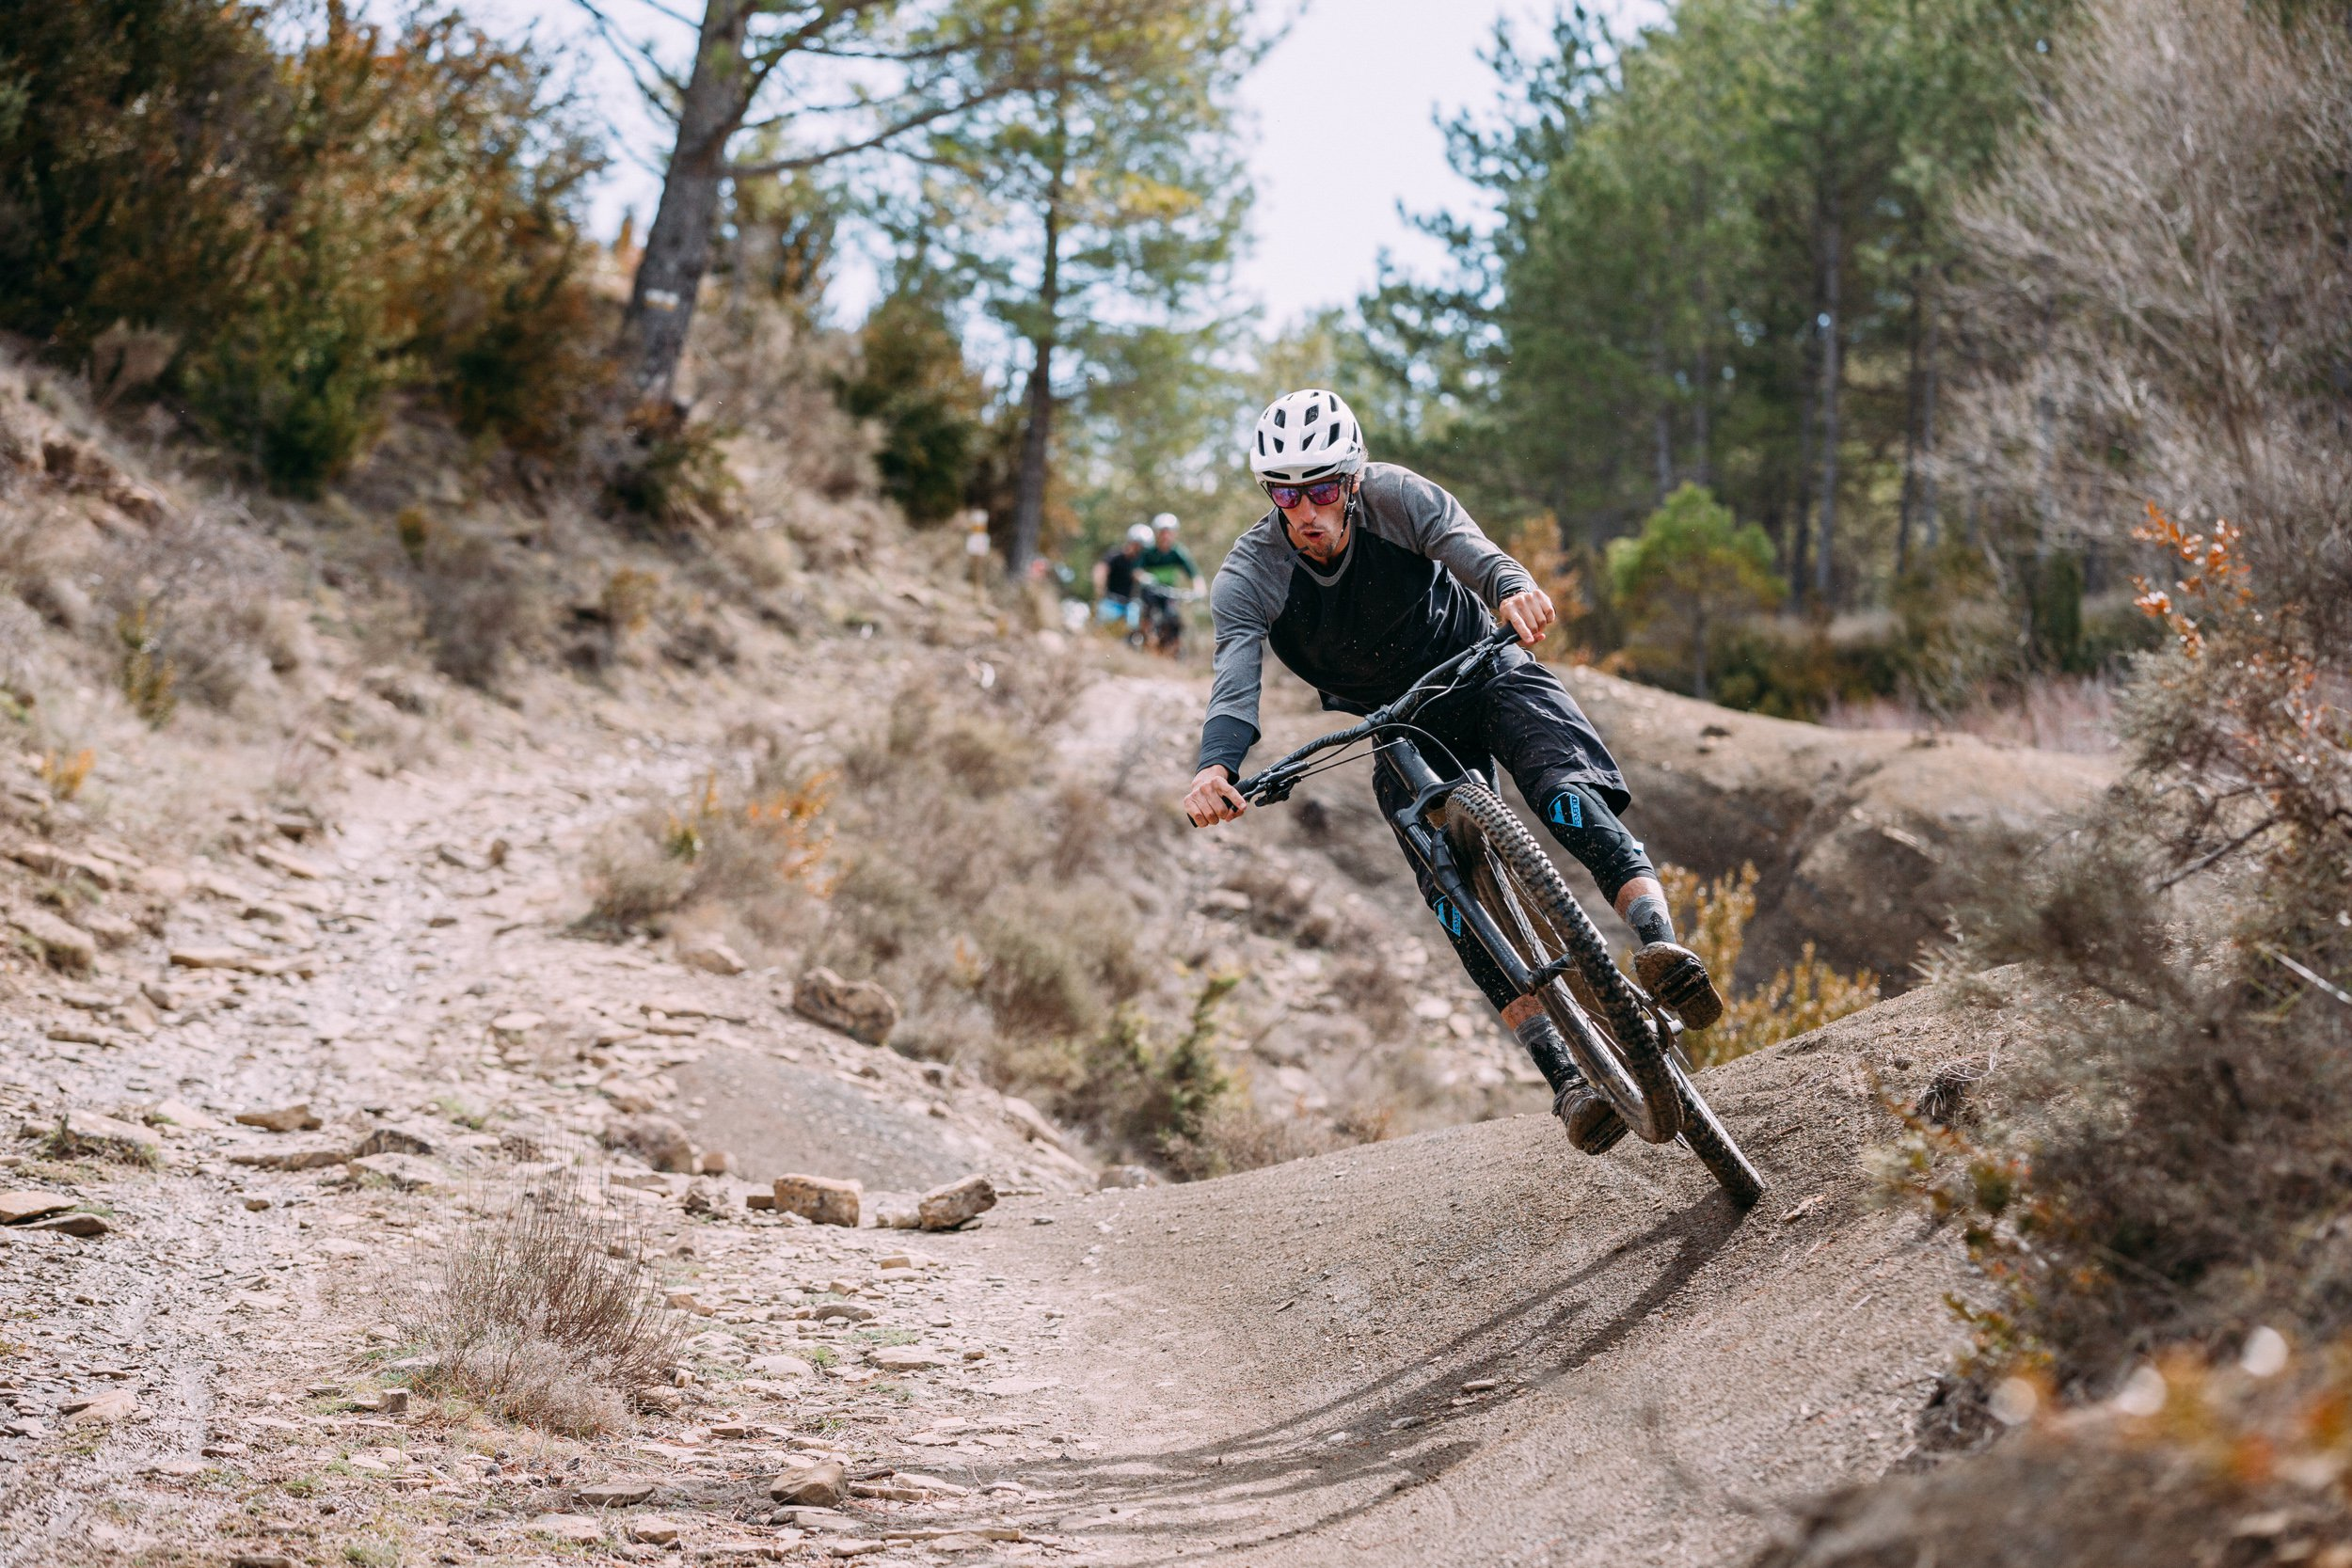 AJ Barlas on the back wheel of the 2018 Specialized Stumpjumper ST 29 in Spain